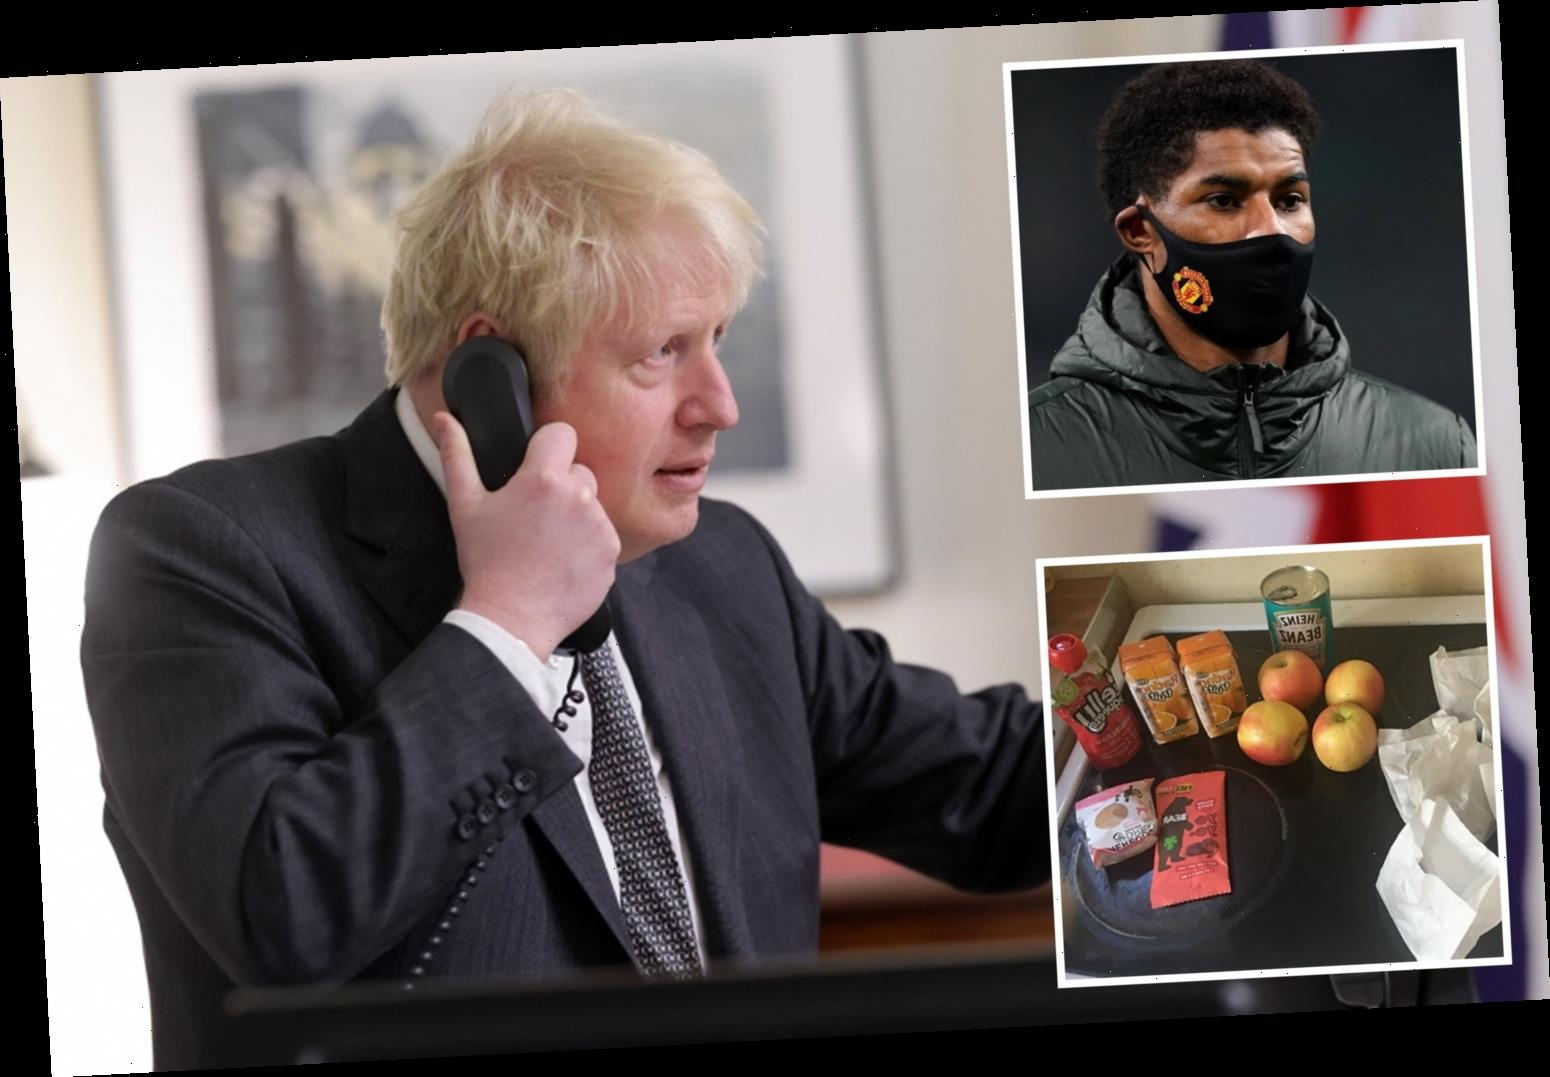 Boris Johnson blasts 'unacceptable' school meal parcels in call with Marcus Rashford after Chartwells packages slammed